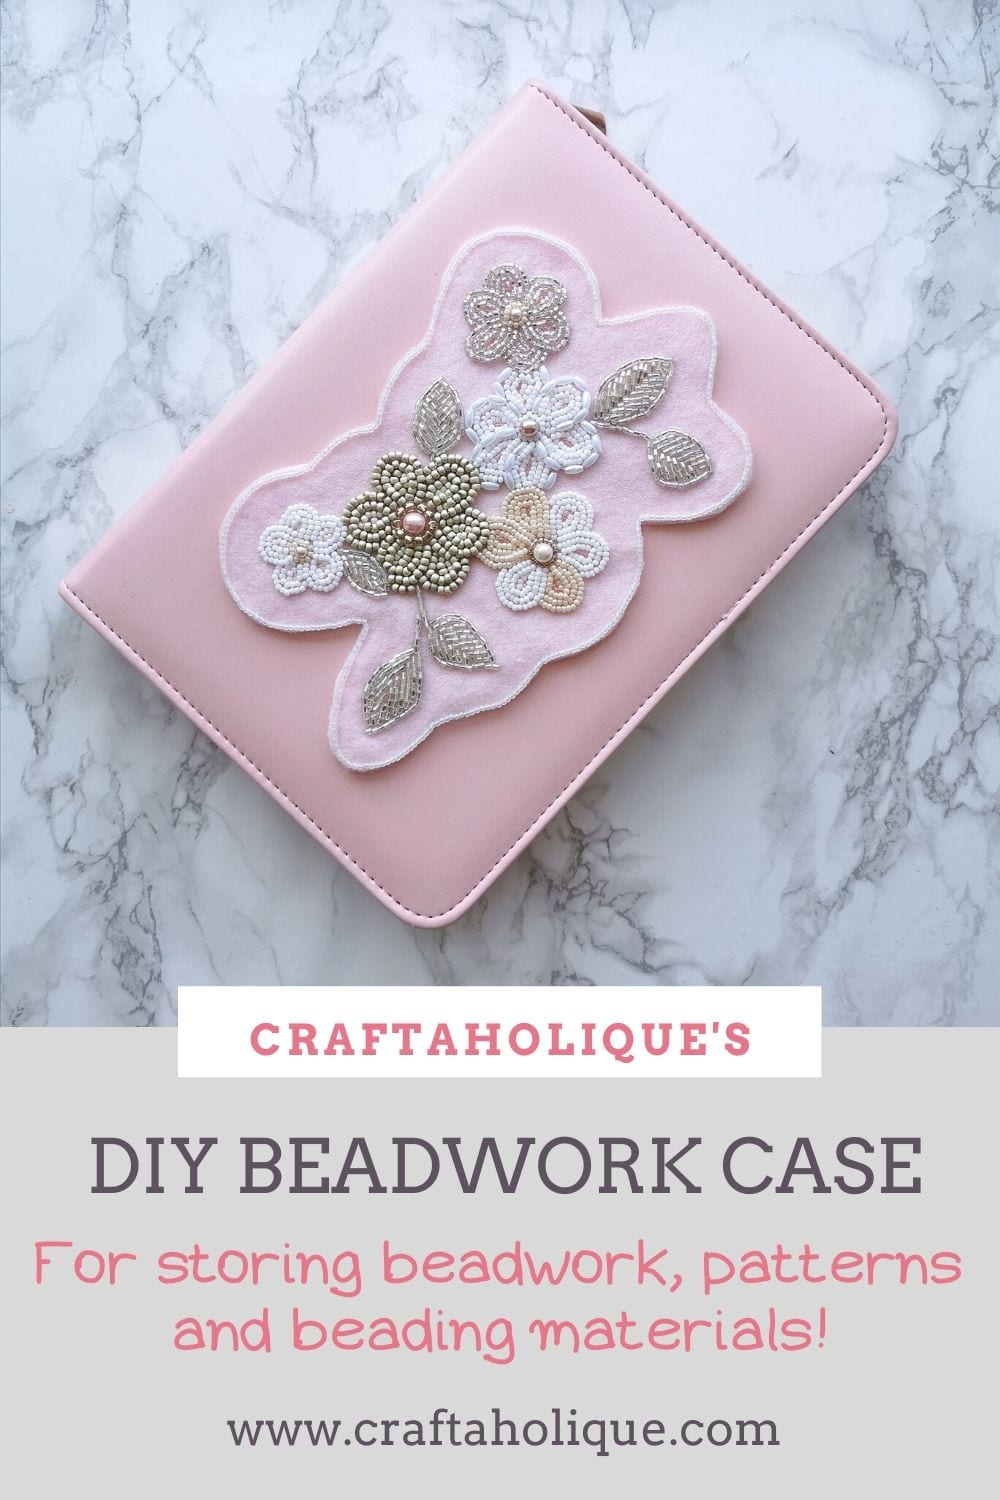 Learn how to make this 2-in-1 DIY beadwork case and beading mat. The inside contains a bead mat and a pocket for beads, threads, beading needles and patterns. Easily store your beadwork and transport it around with you so you can bead wherever you are!